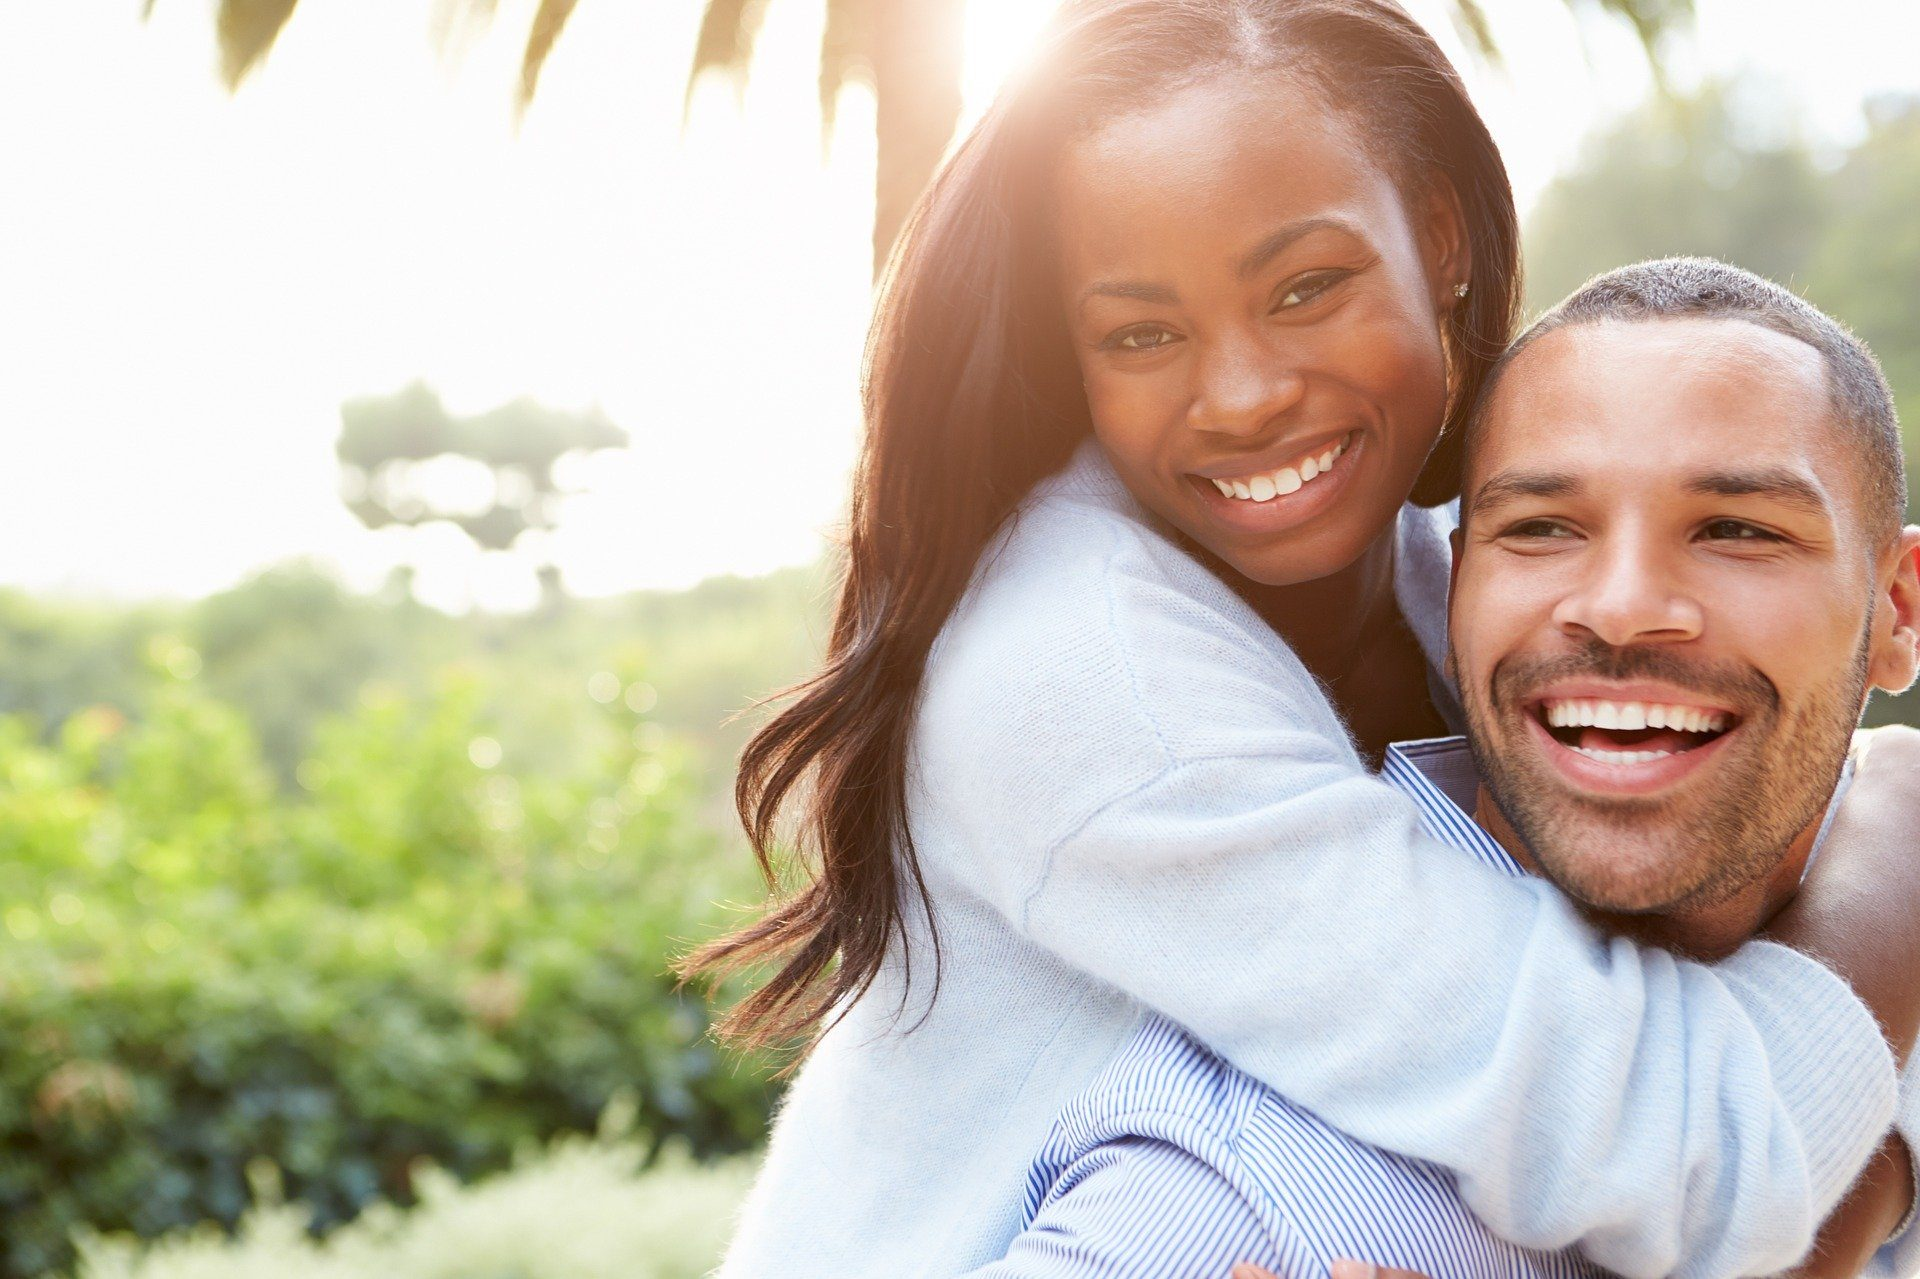 Black couple smiling at camera while man gives the woman a piggy back ride with sun behind them